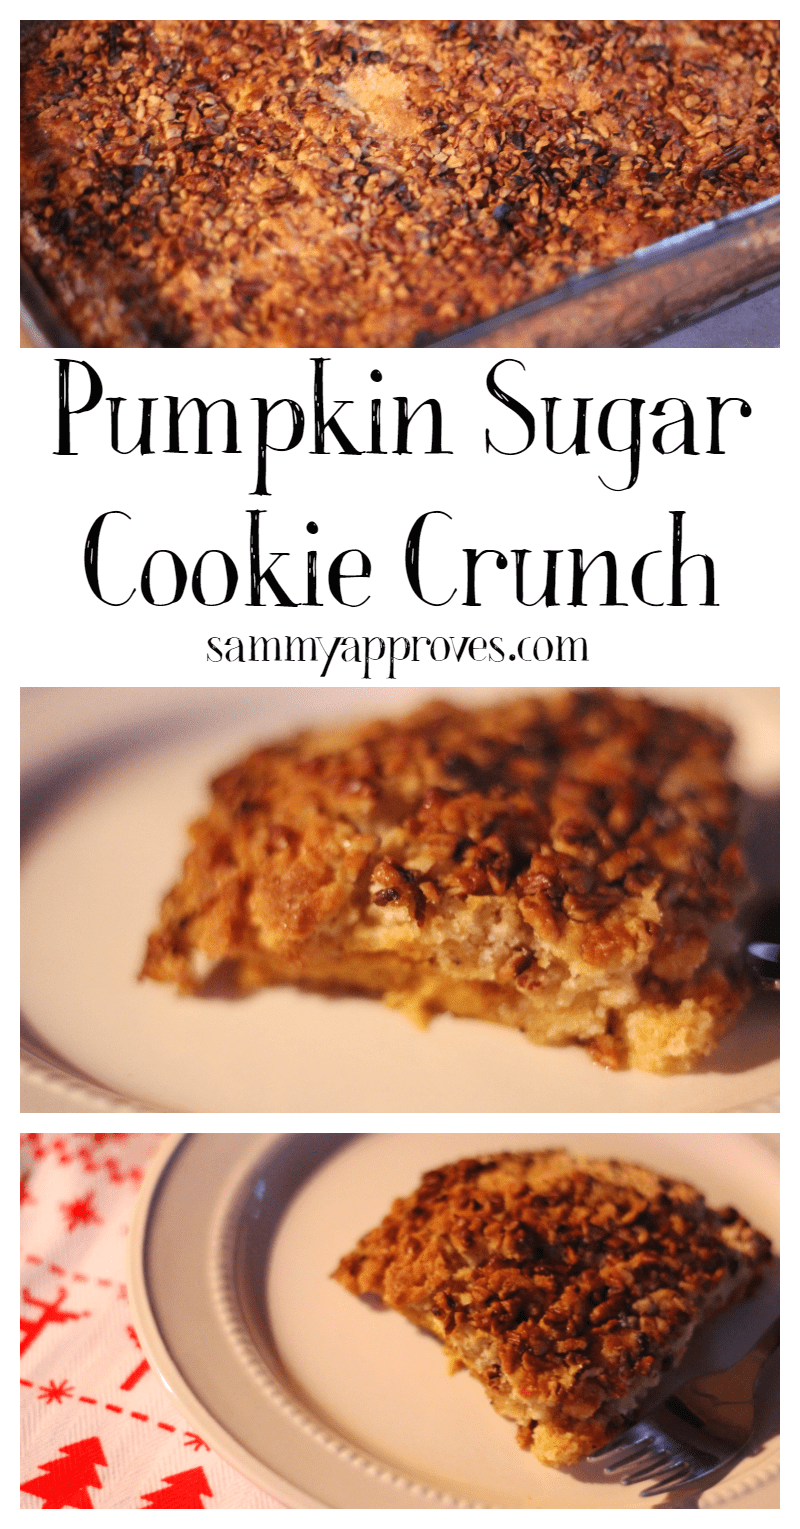 Pumpkin Sugar Cookie Crunch